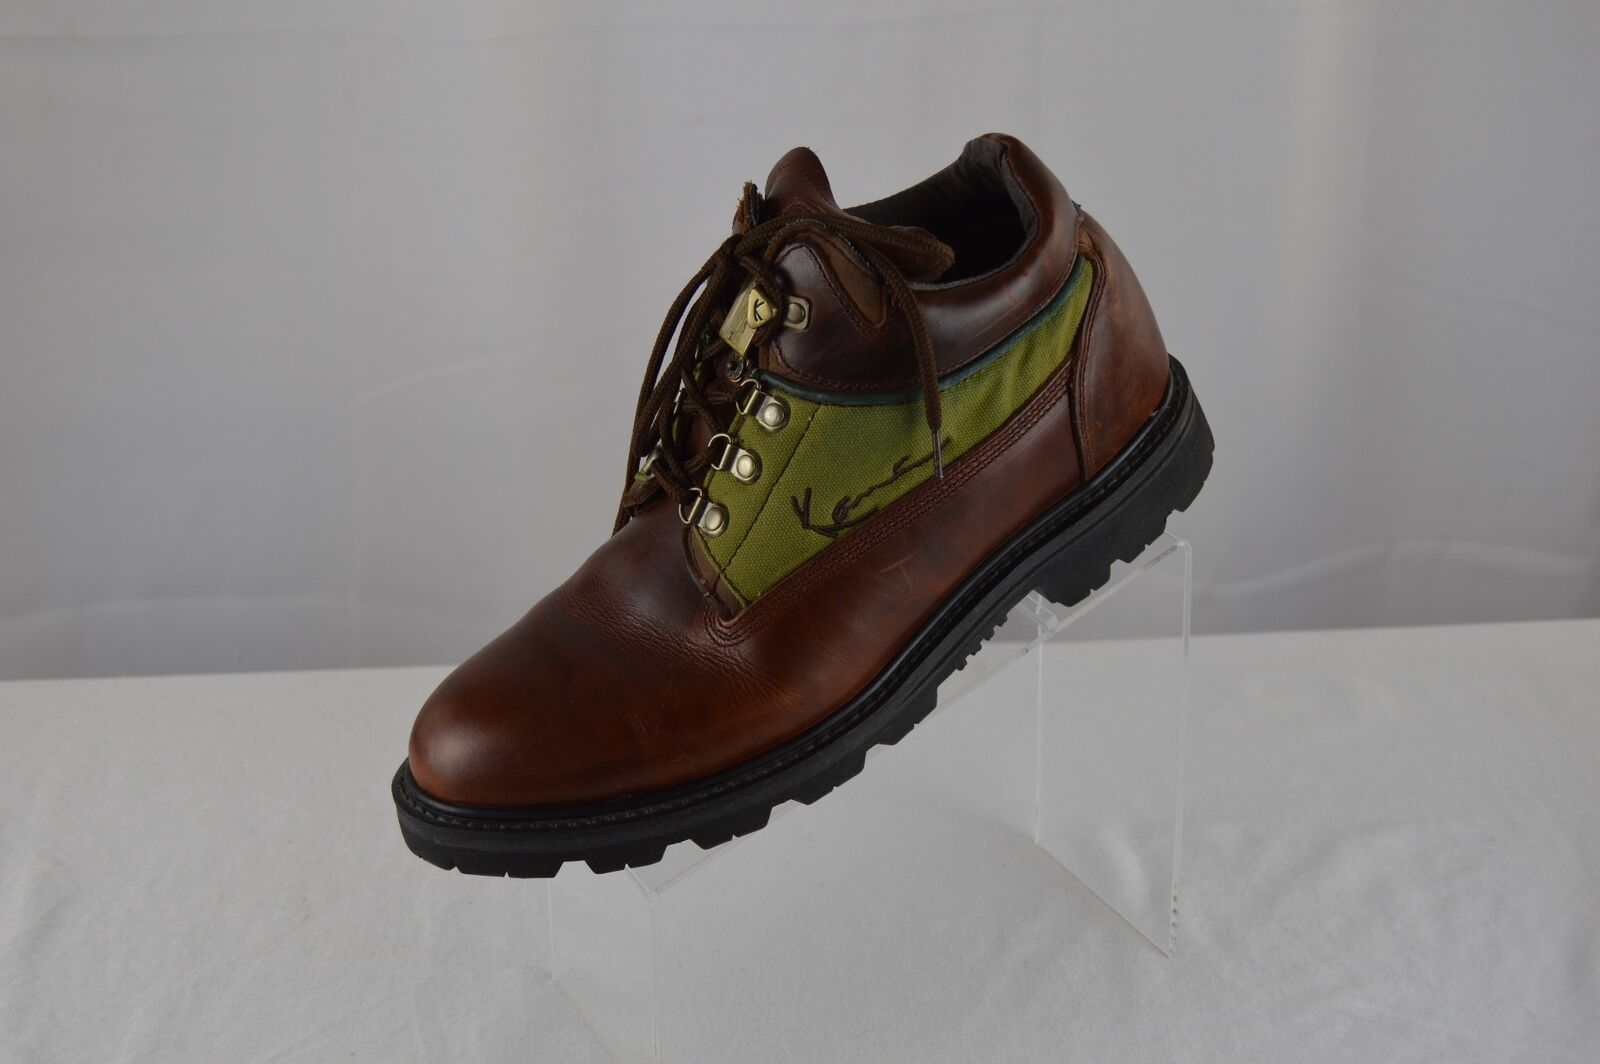 Vintage 90s Karl Kani Leather Boots Size 13 mens Urban rare brown and green z1